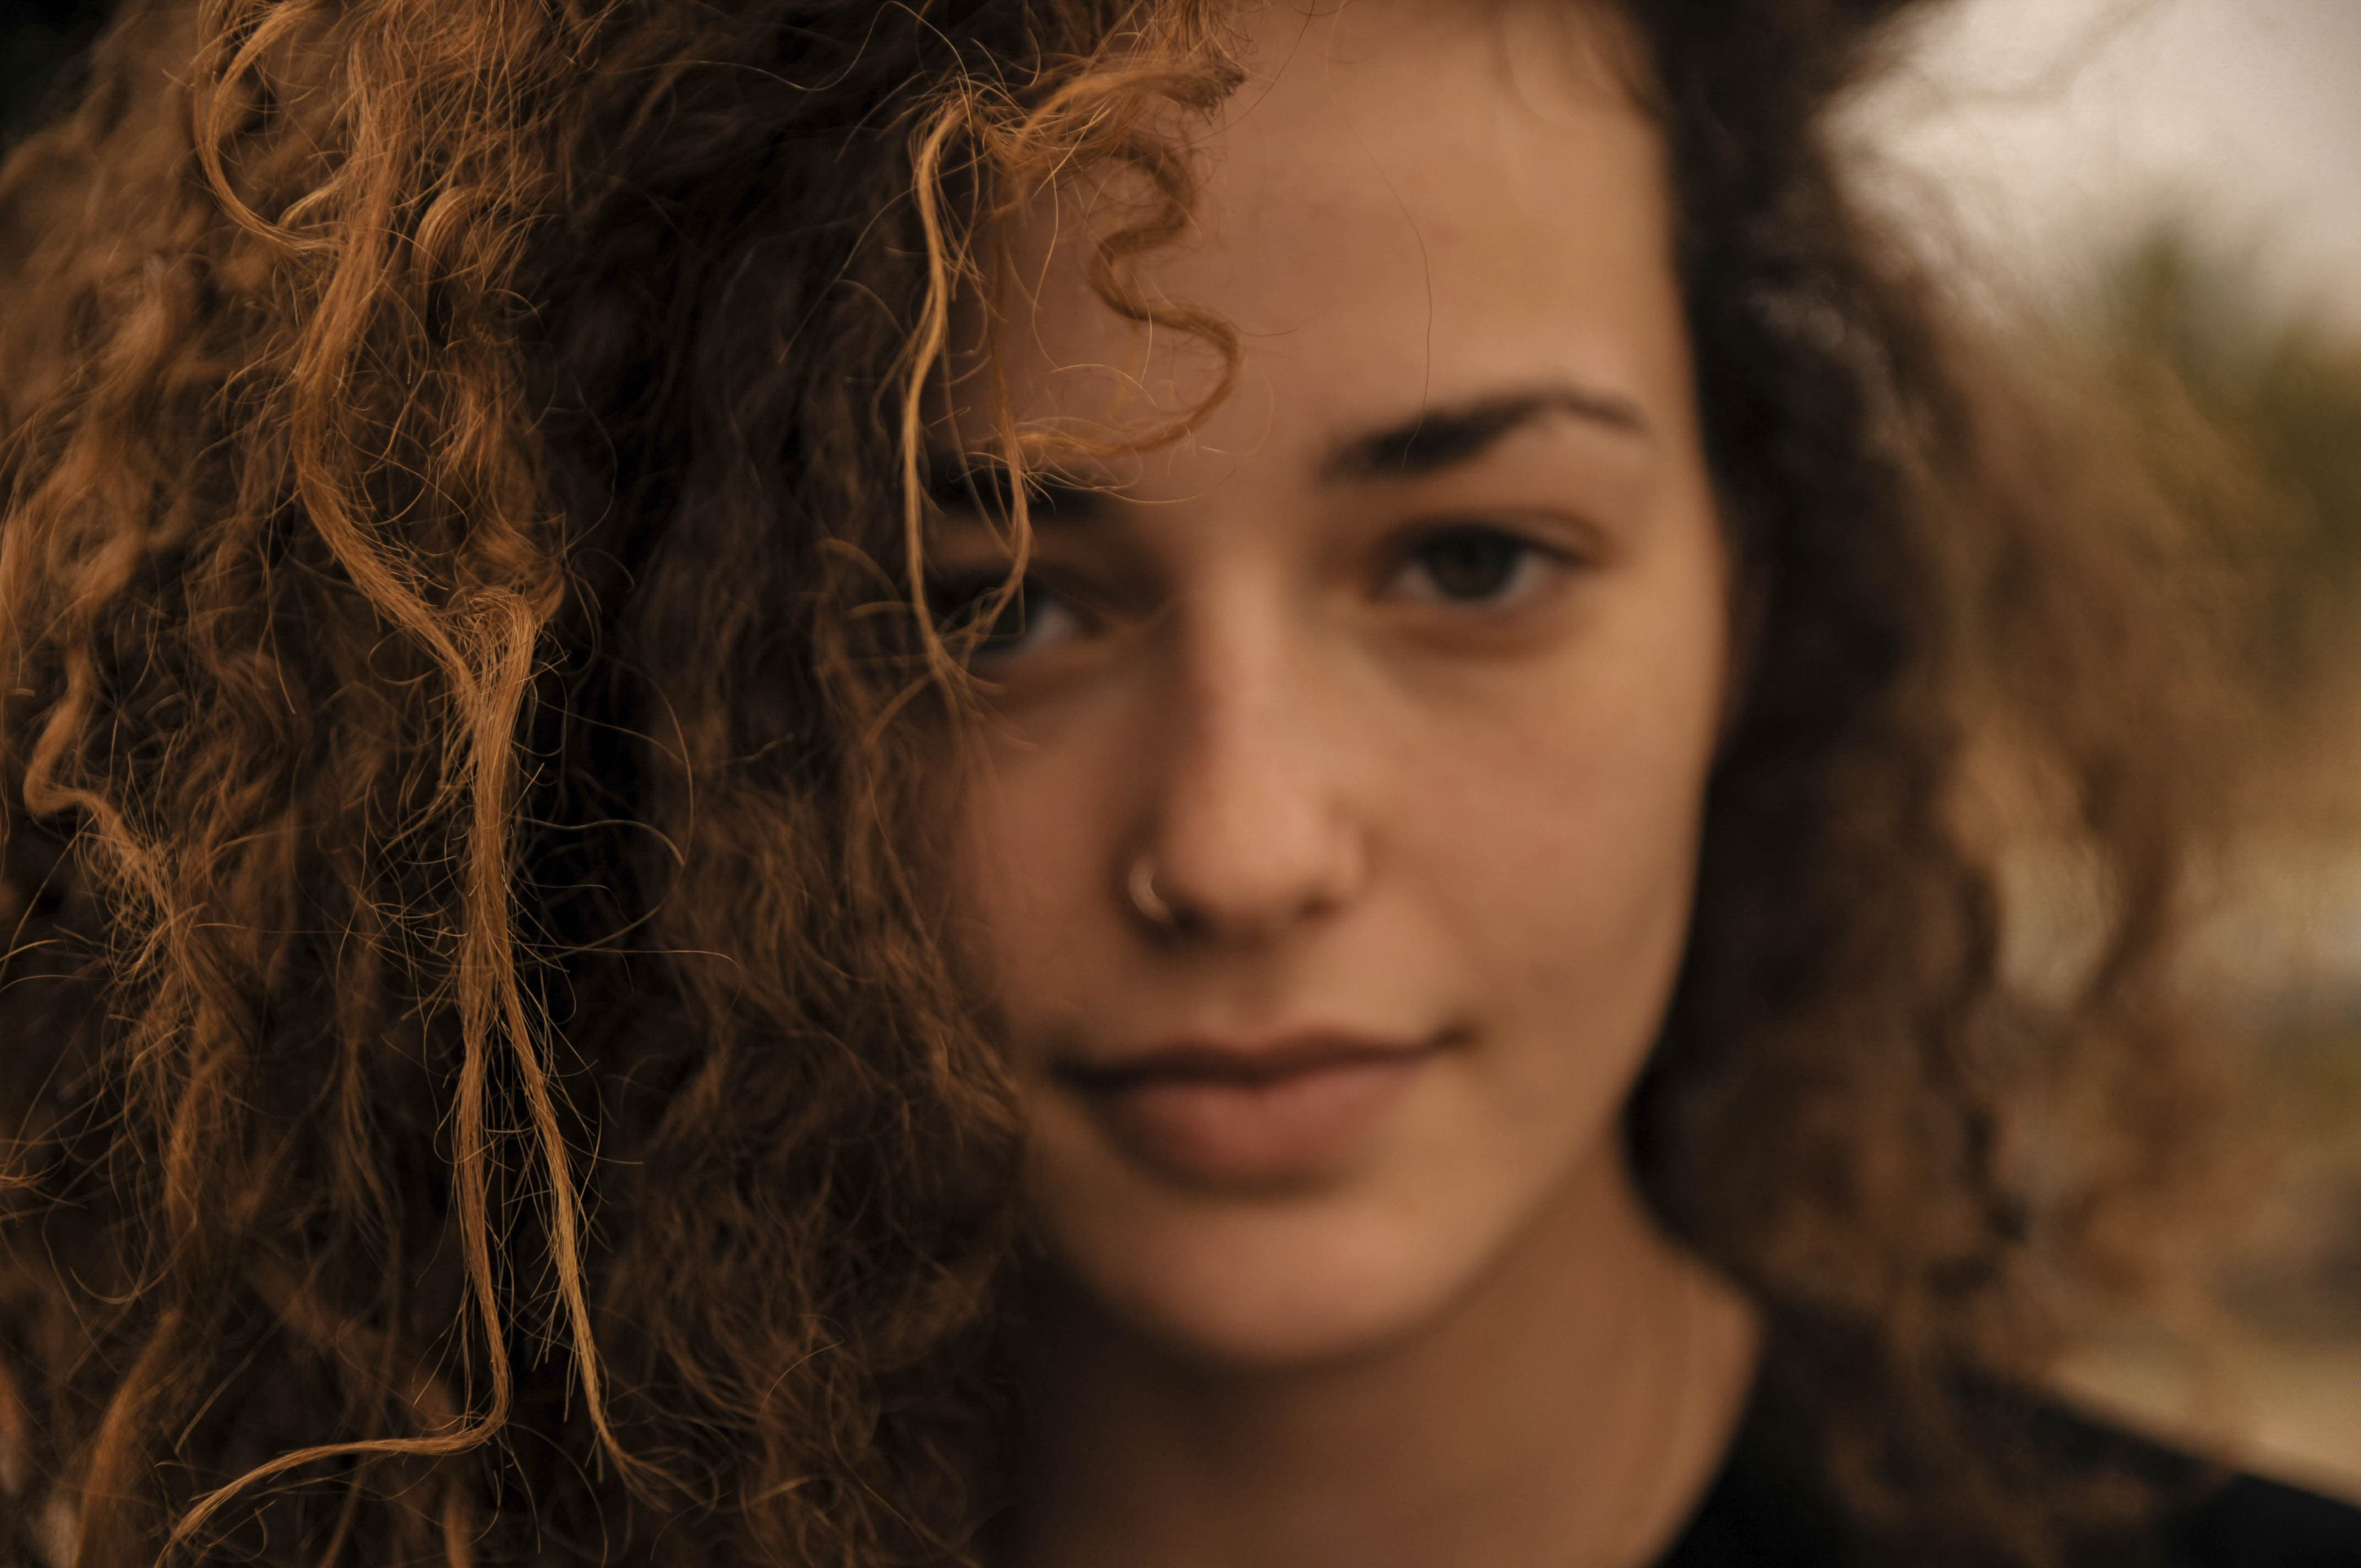 Up close portrait of girl with curly hair